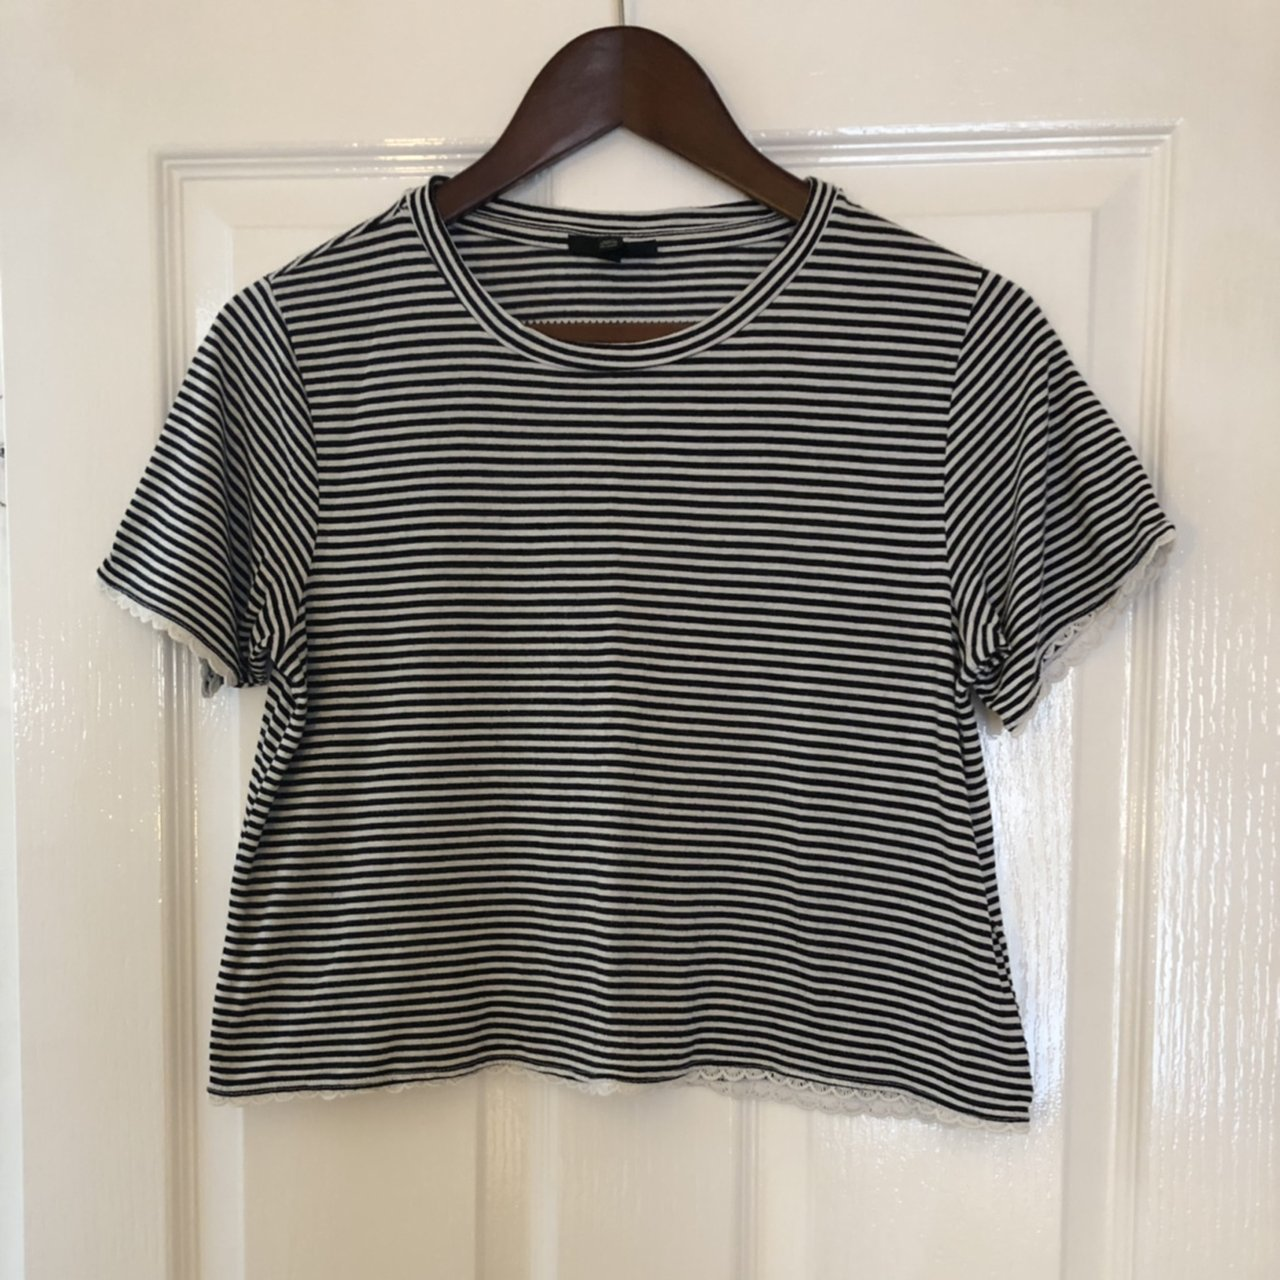 cdb183c0448 @stylistwears. 23 days ago. London, United Kingdom. Topshop striped crop T- shirt. Navy and white stripes with lace trim ...